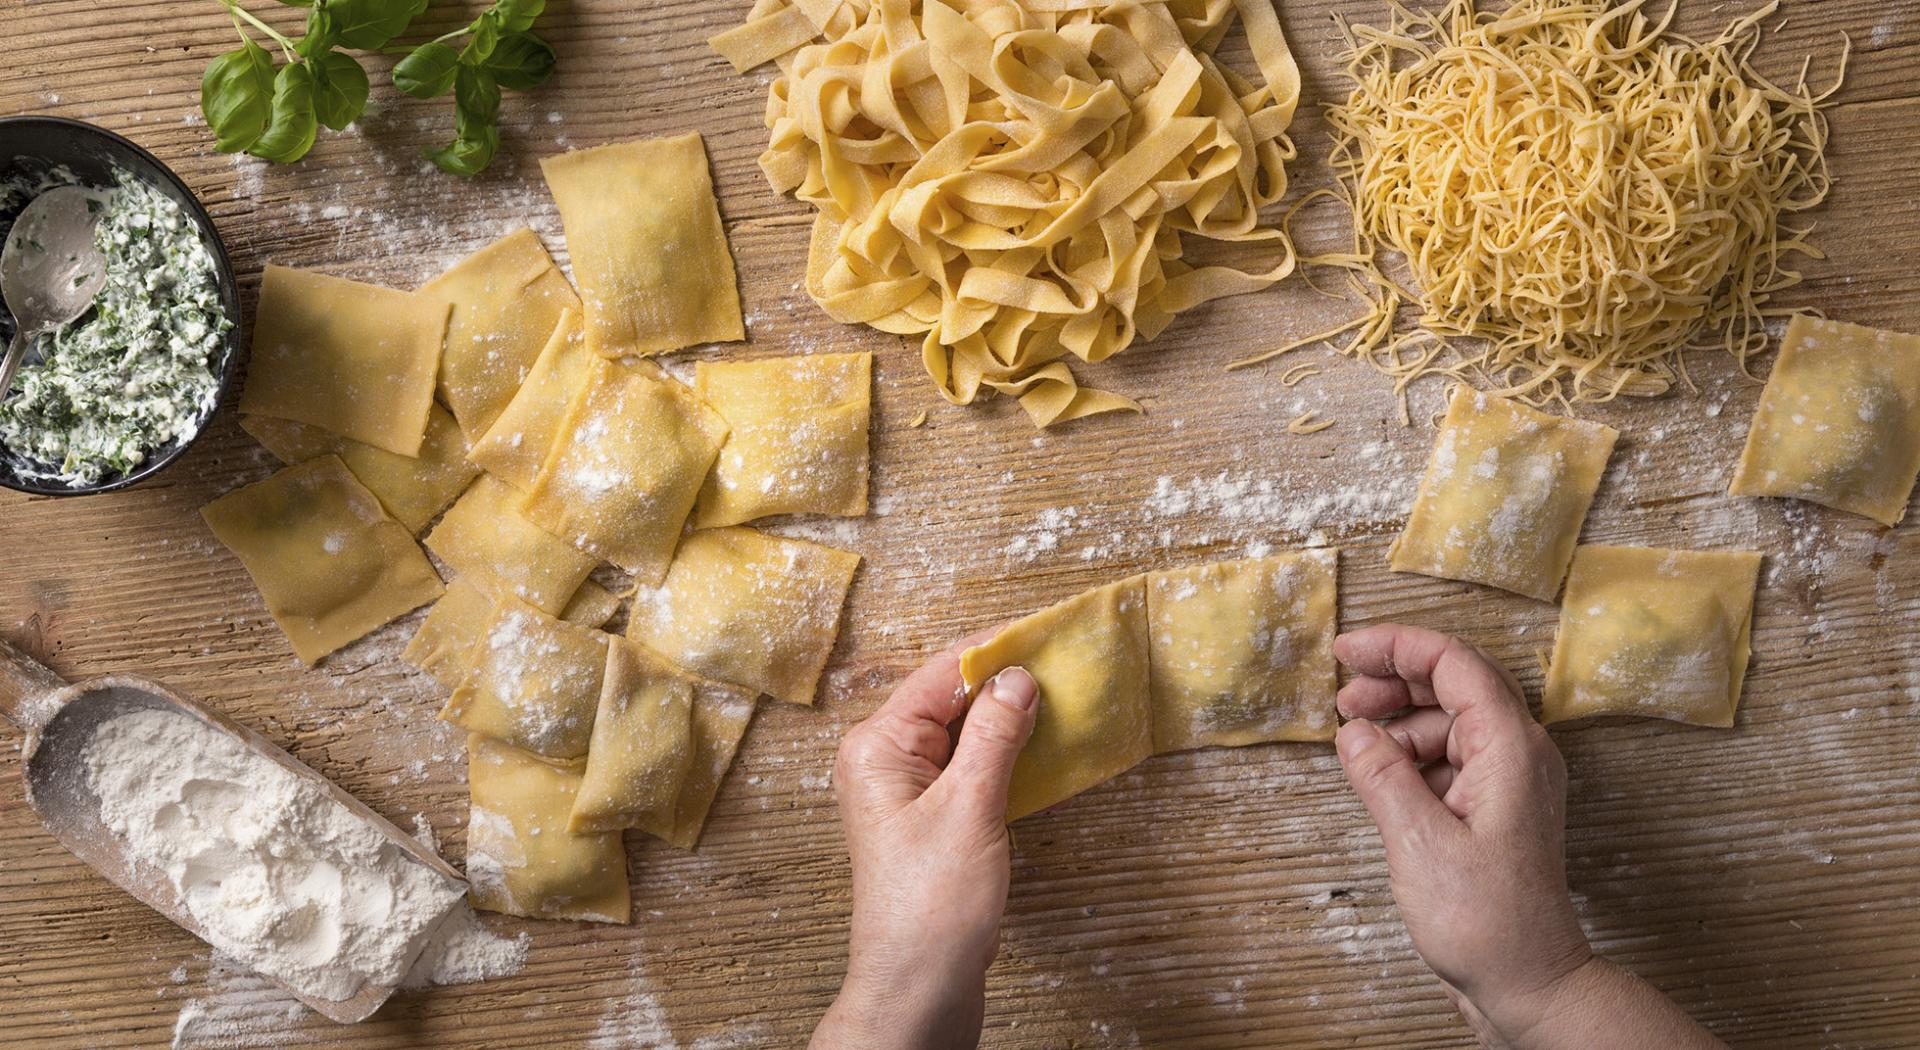 Come preparare la pasta fresca all'uovo in casa | AIA Food